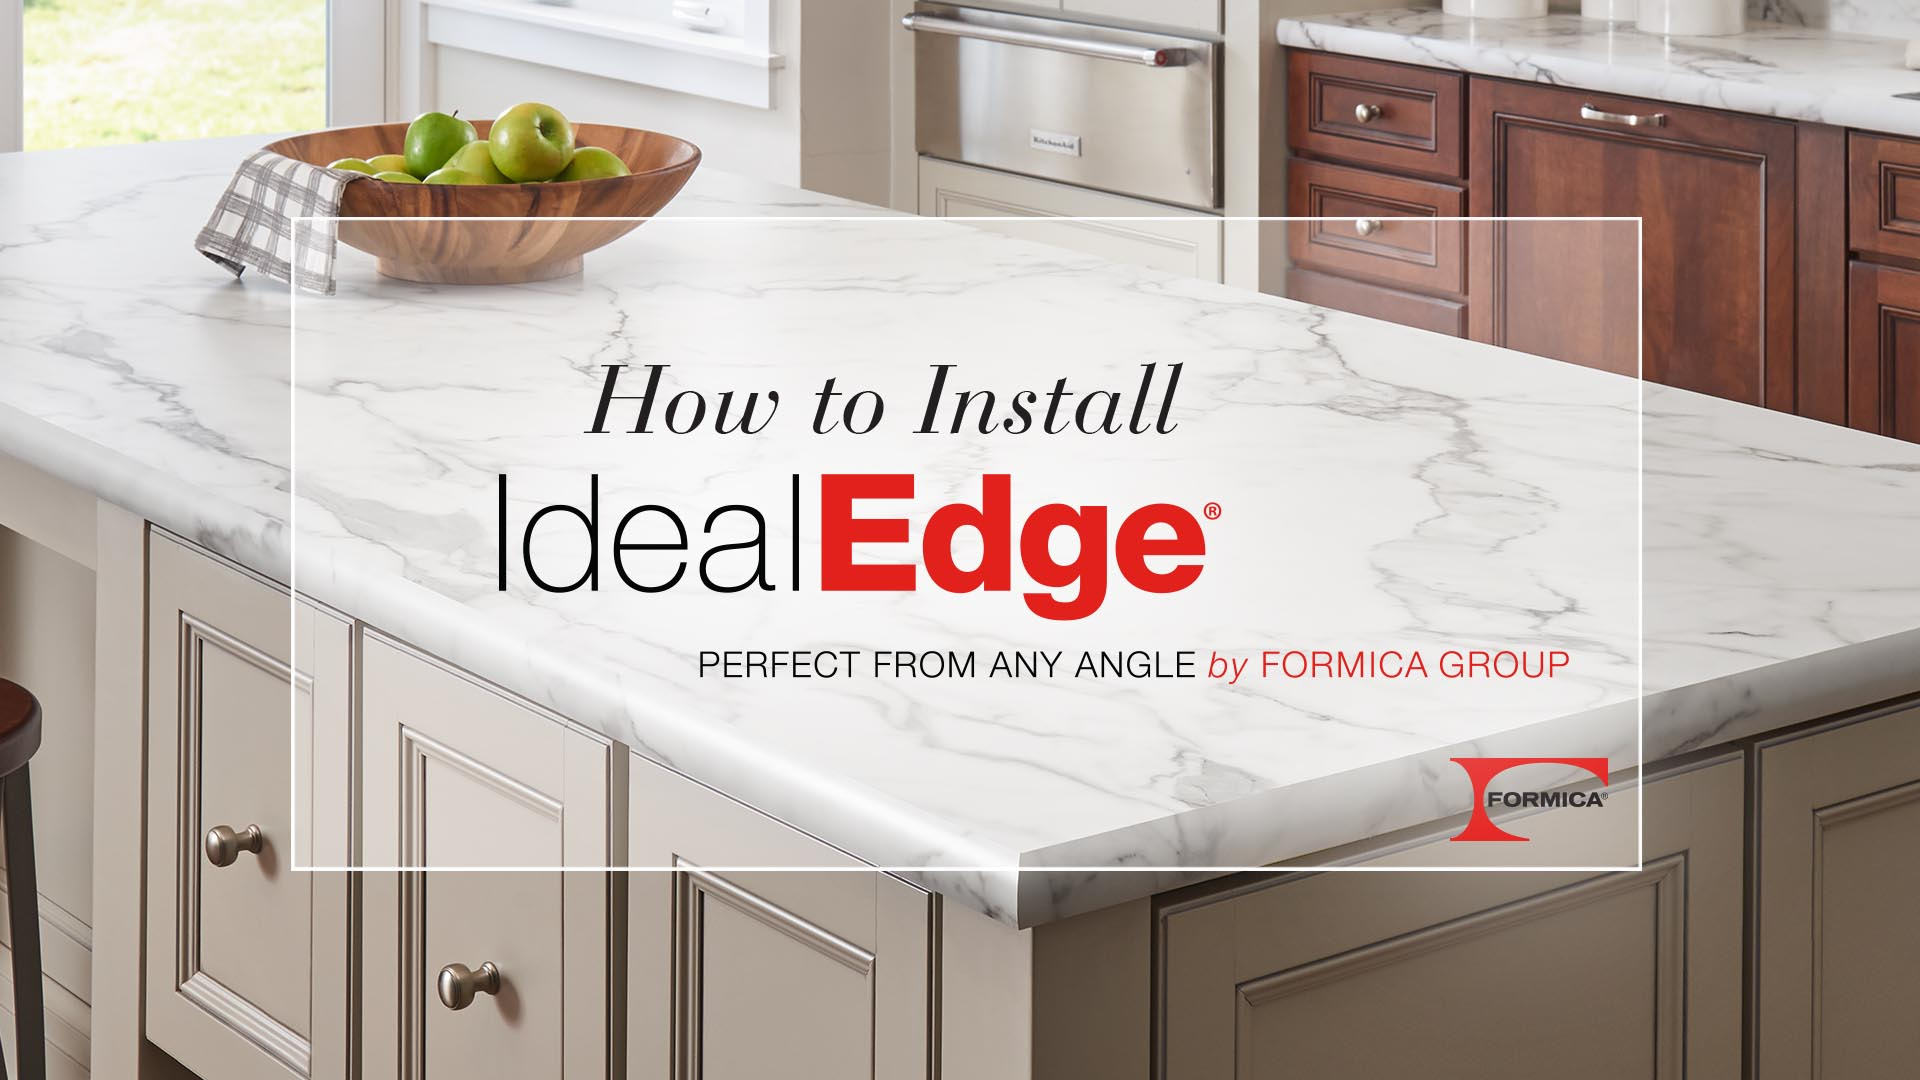 How to Install IdealEdge® Decorative Edging by Formica Group